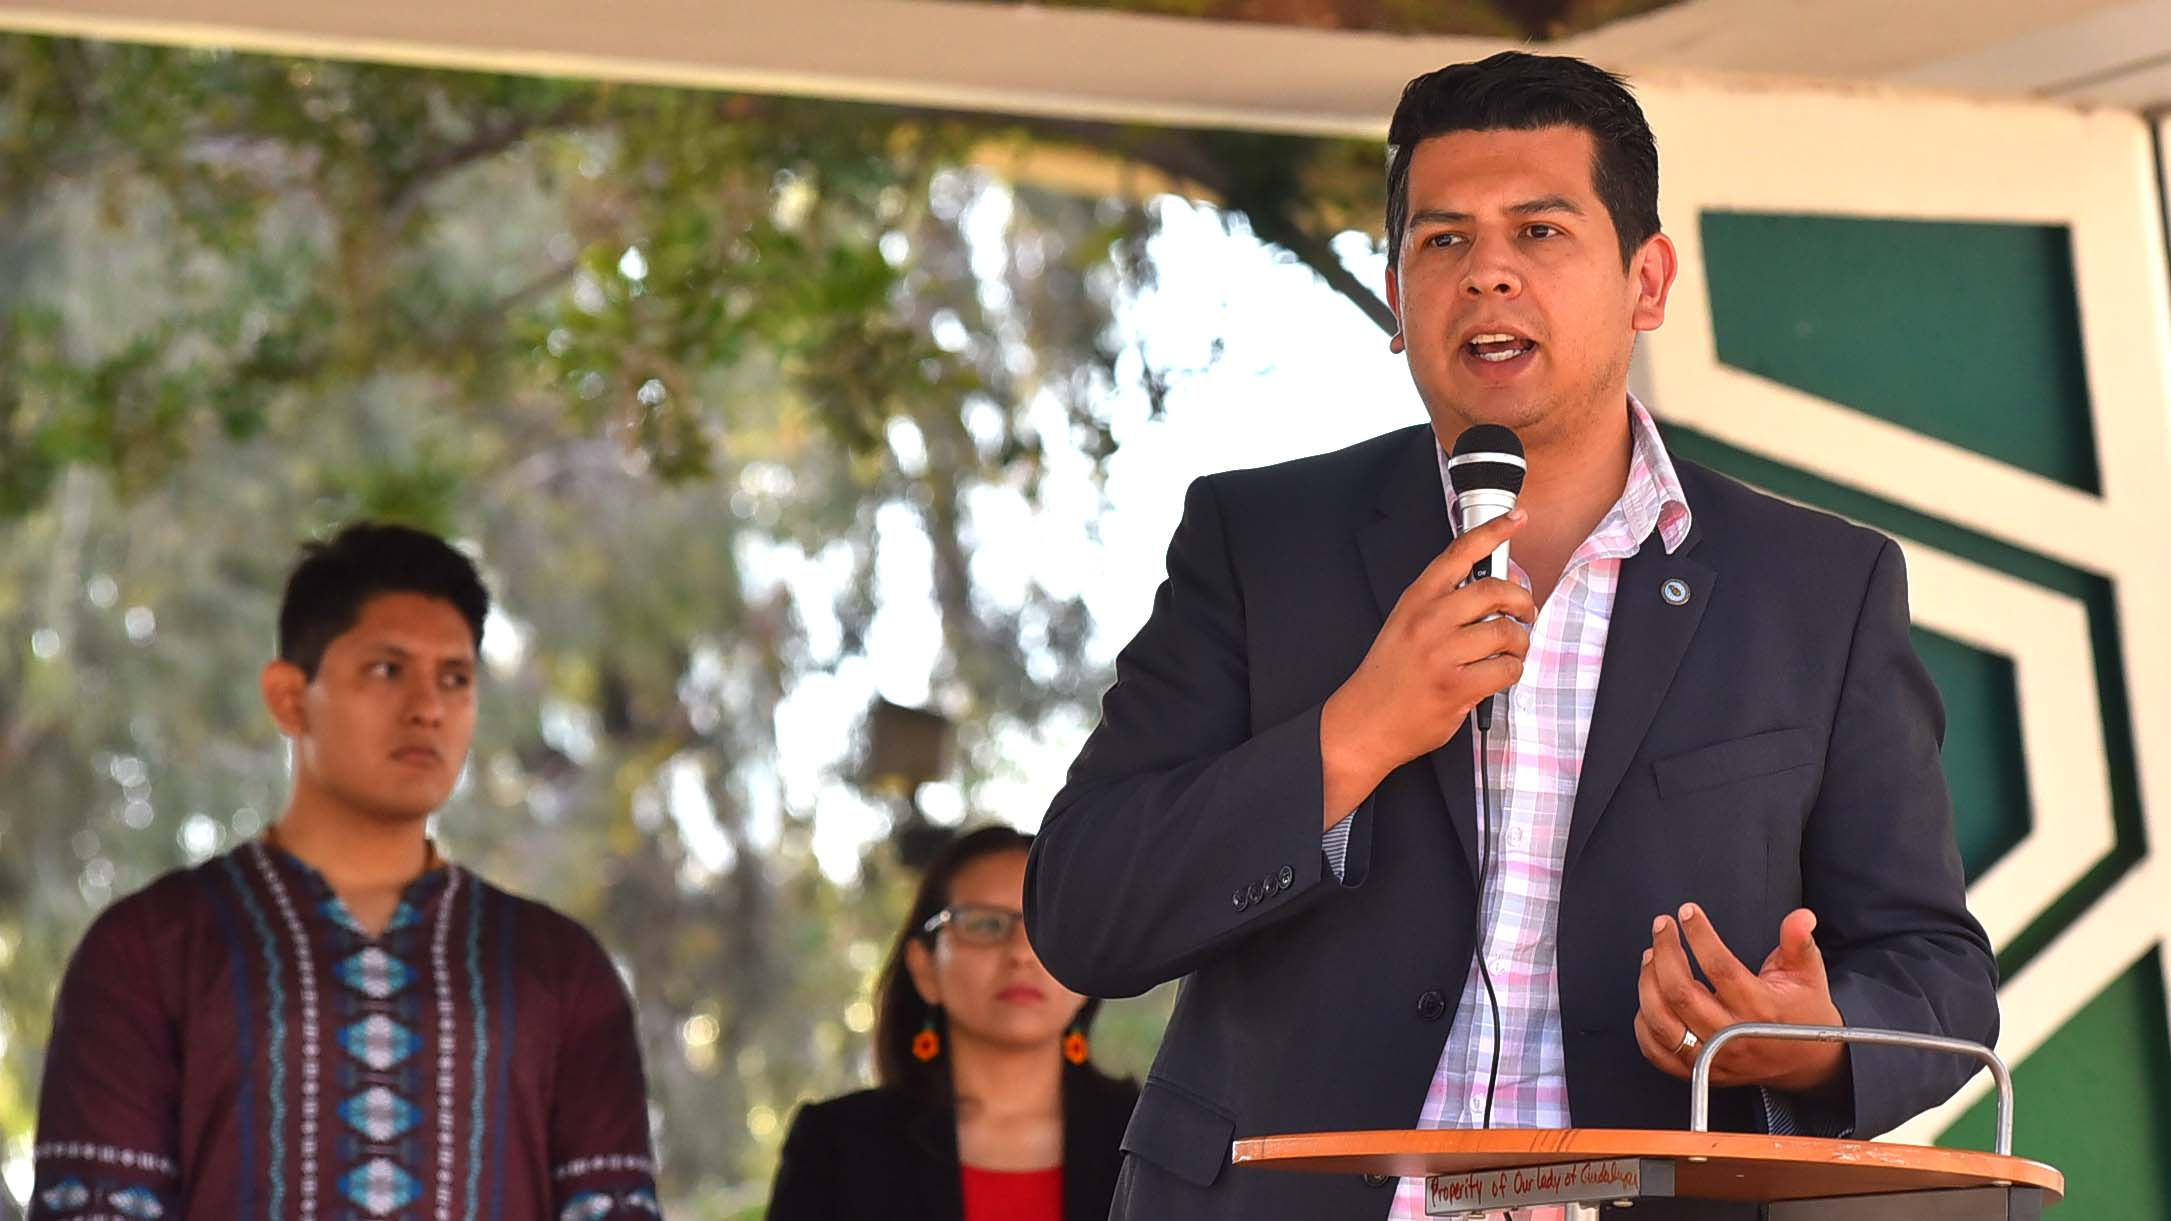 San Diego City Councilman David Alvarez speaks at a Chicano Park rally with Jesuit priests and community leaders.